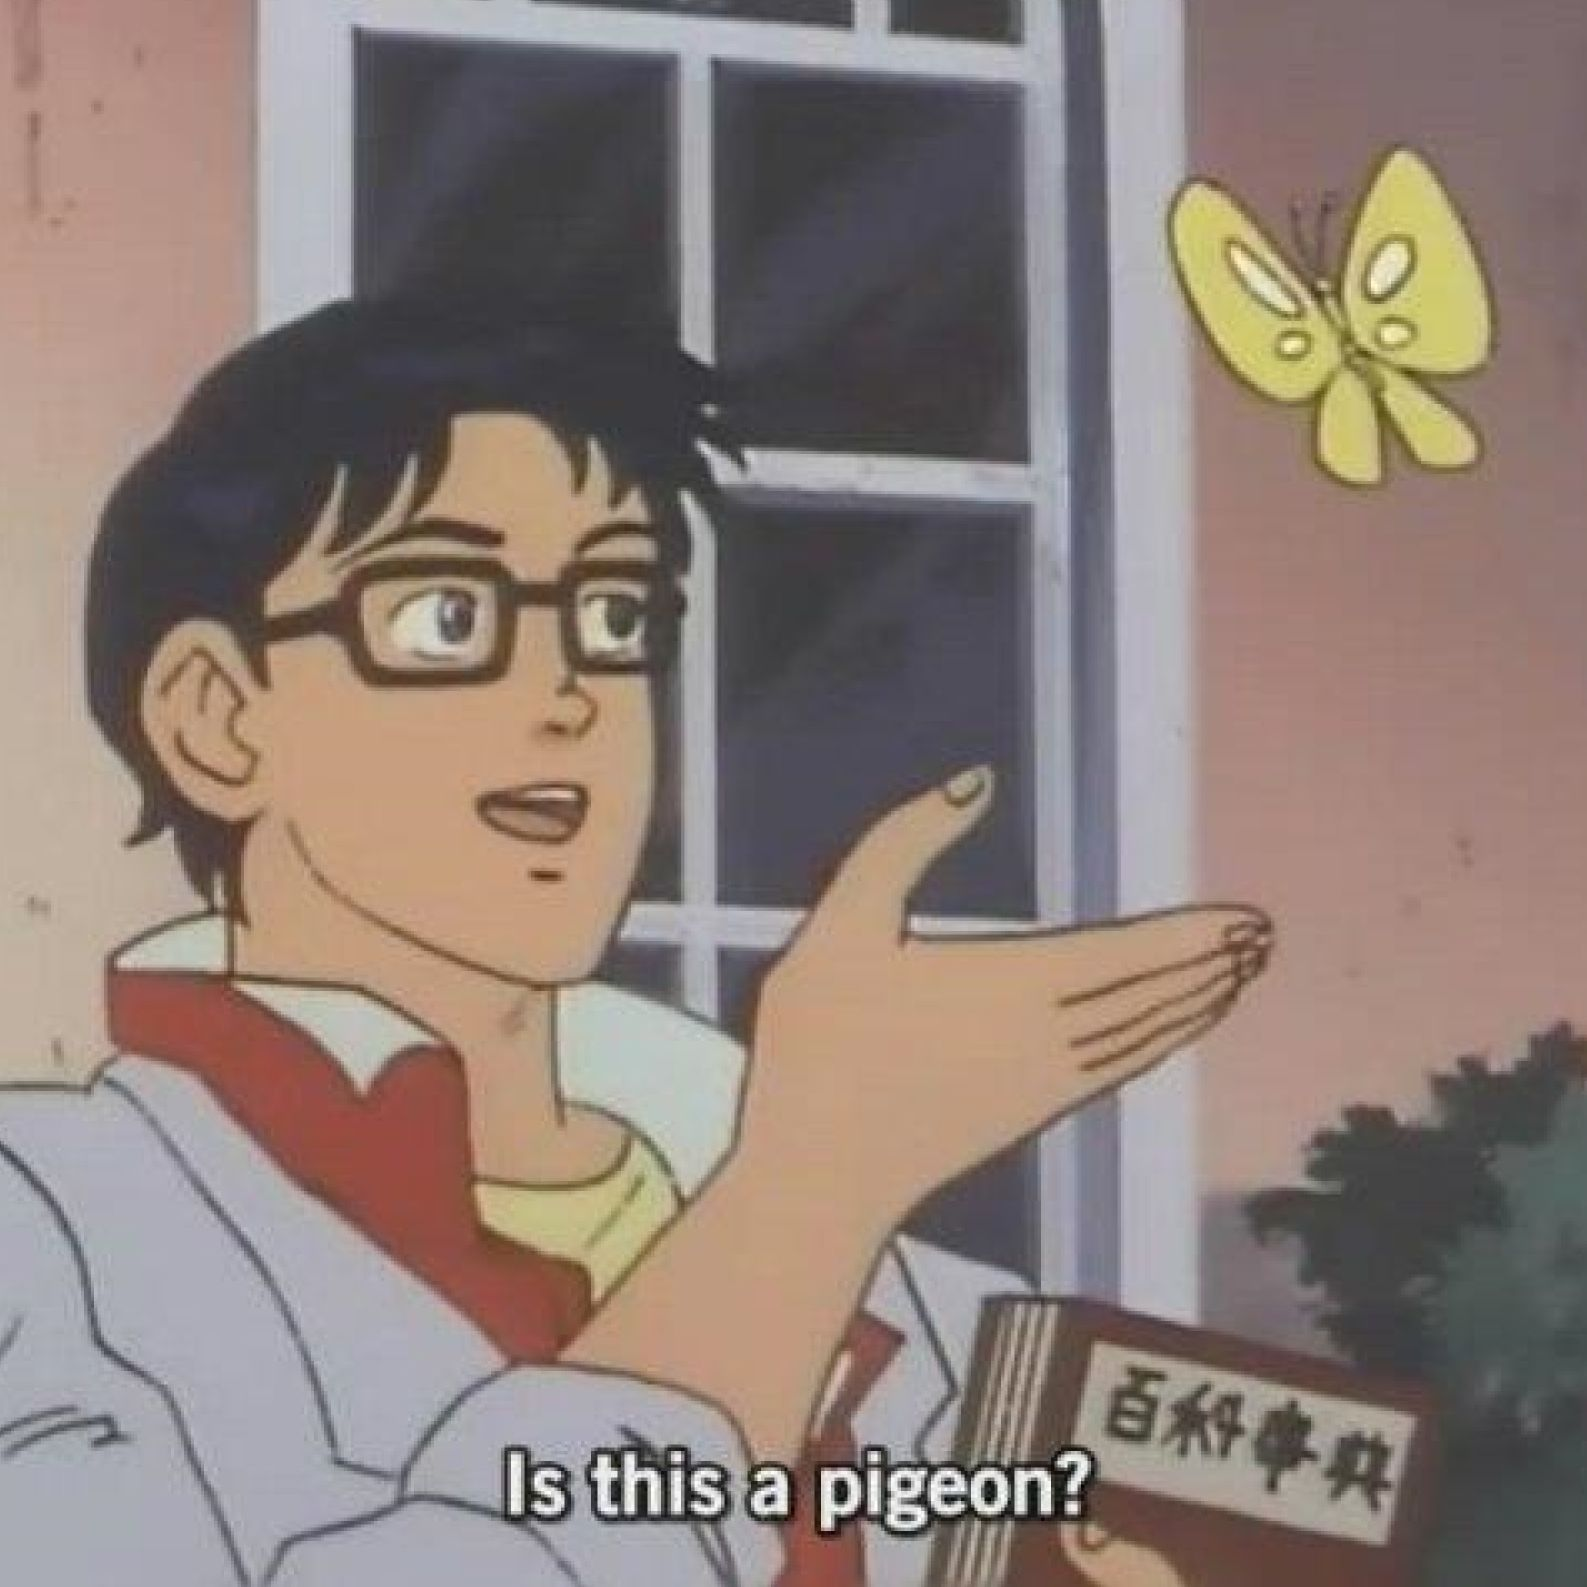 is this a pigeon? Meme Template Thumbnail